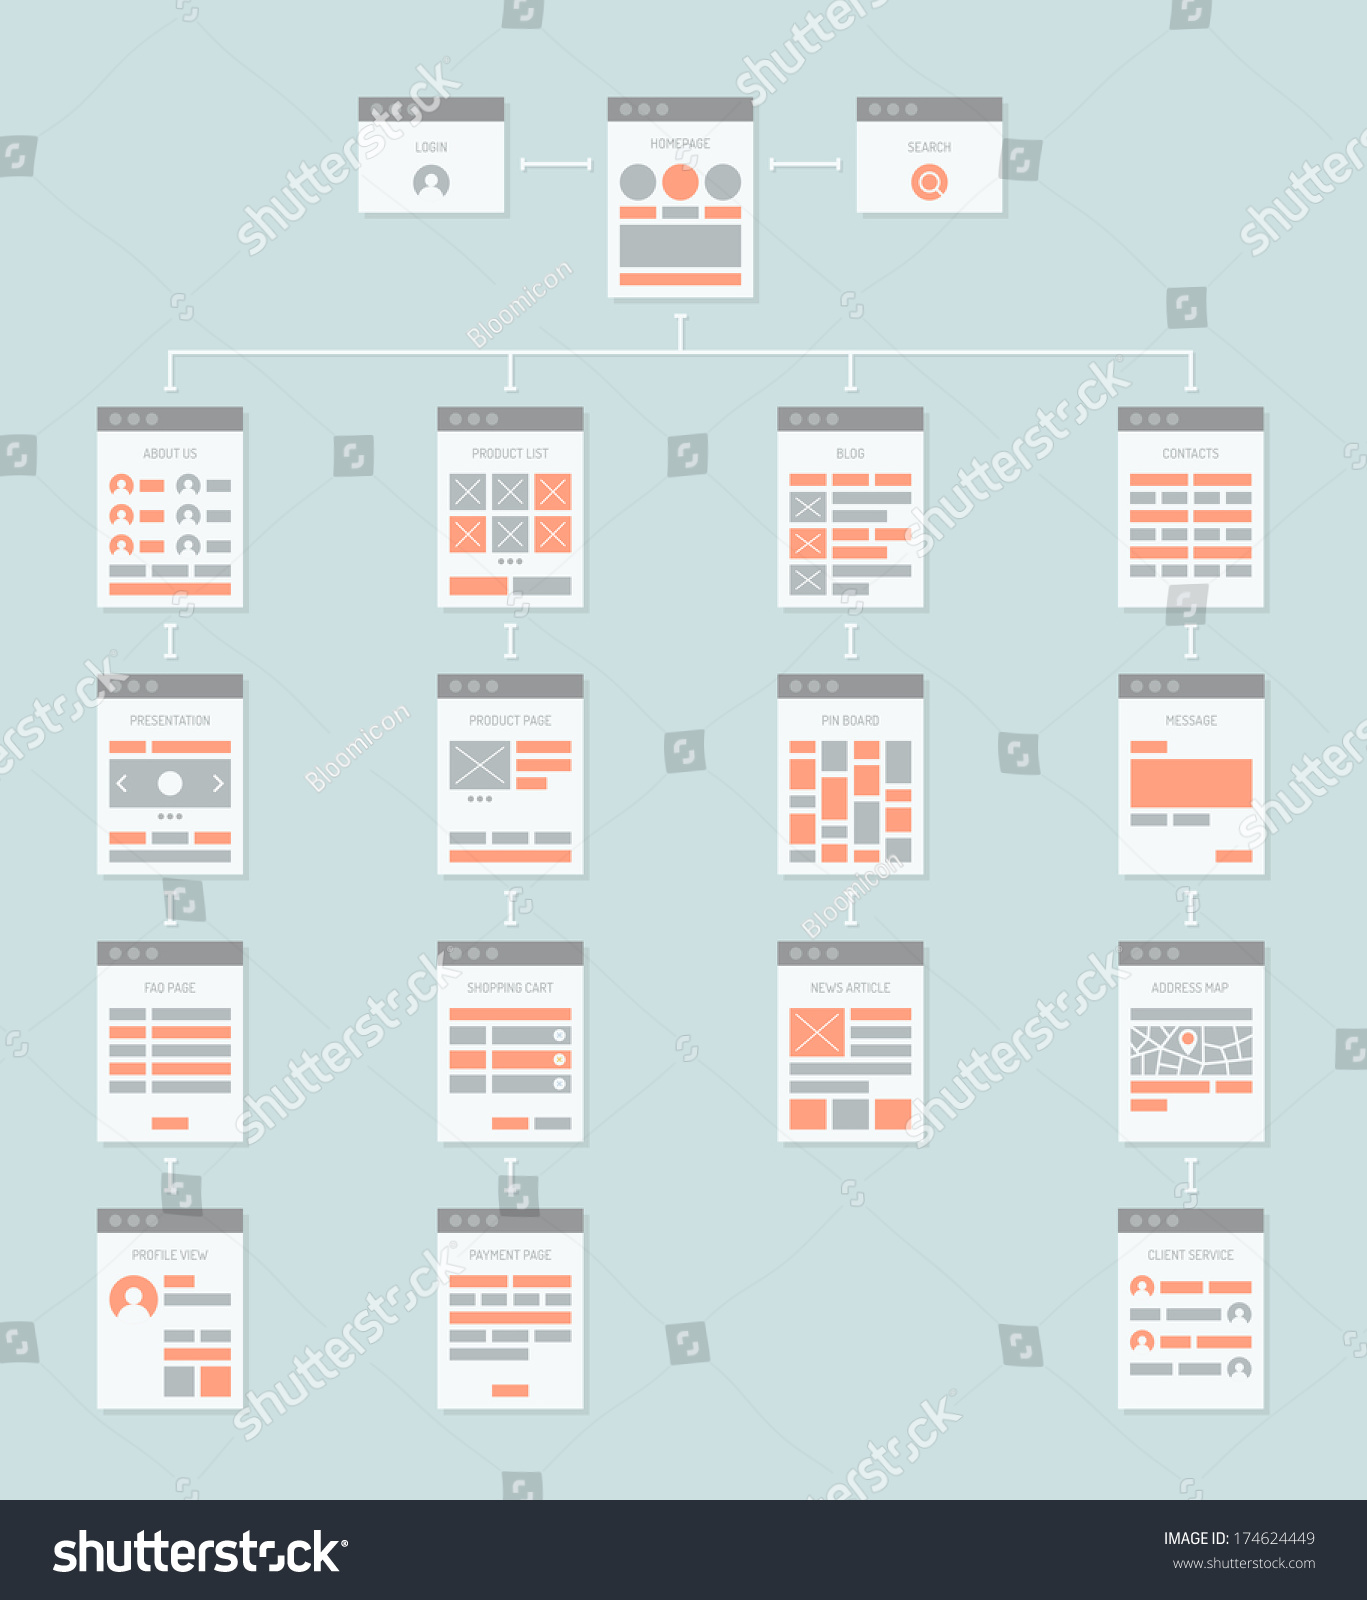 Sitemap: Flat Design Style Modern Vector Illustration Concept Of